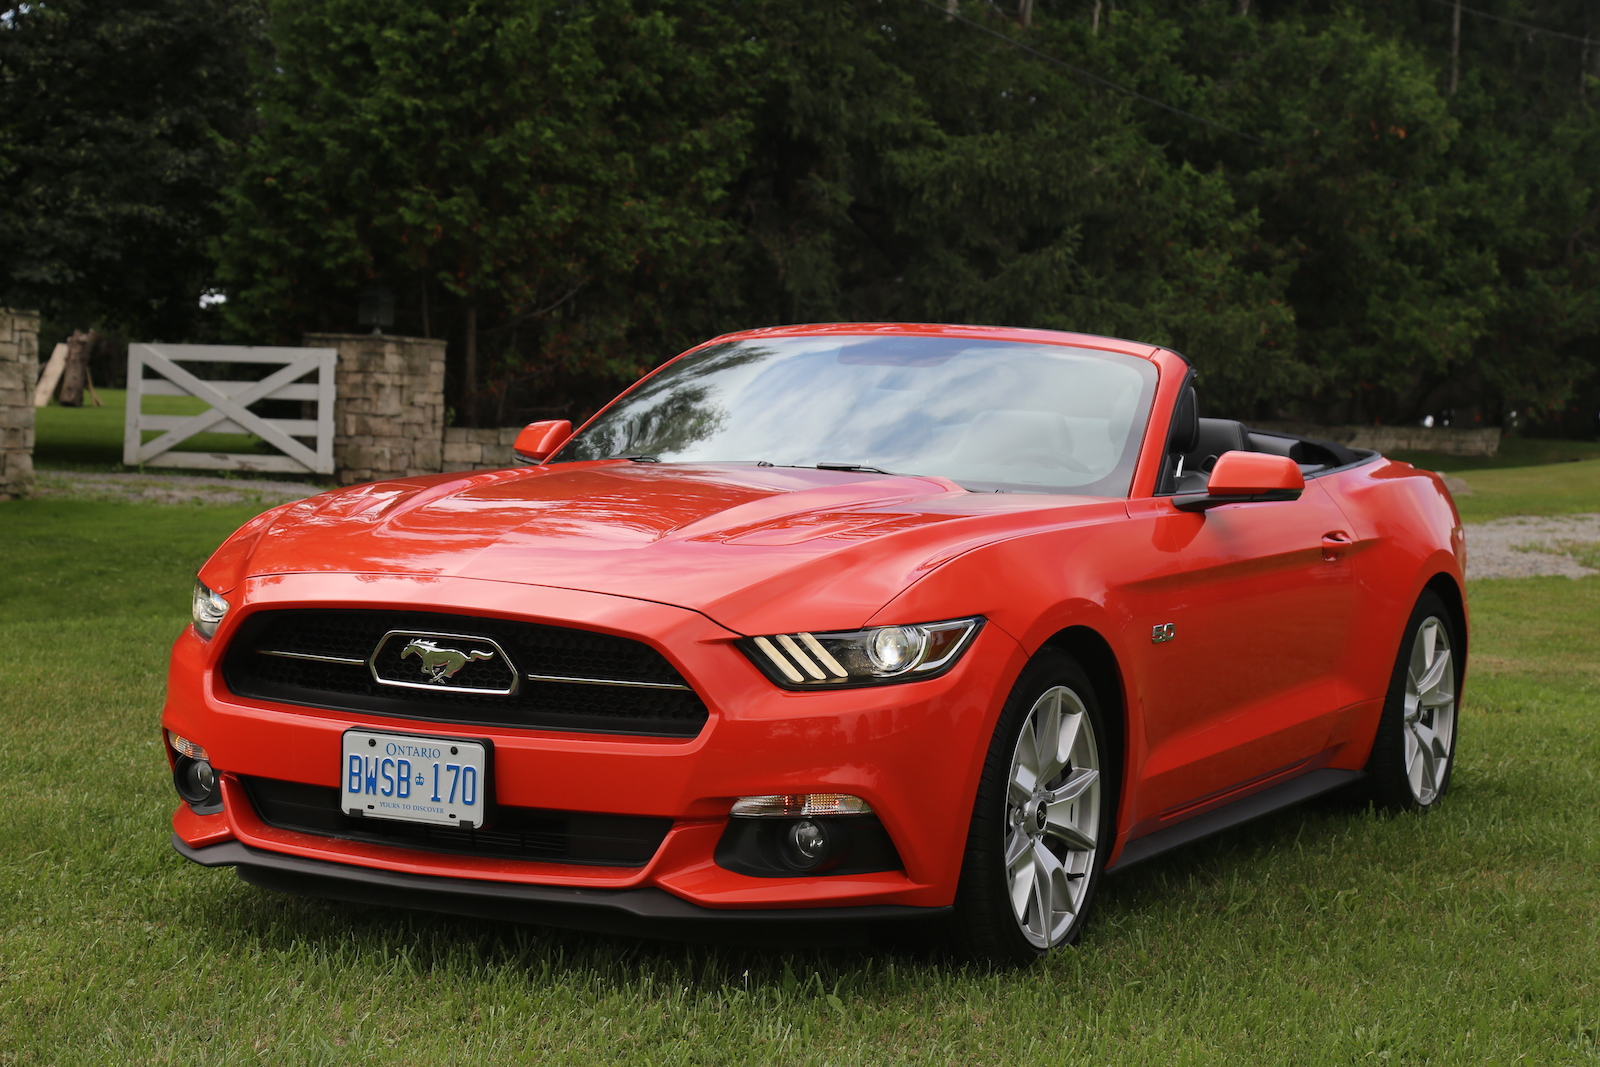 2018 Ford Mustang GT Convertible photo - 1